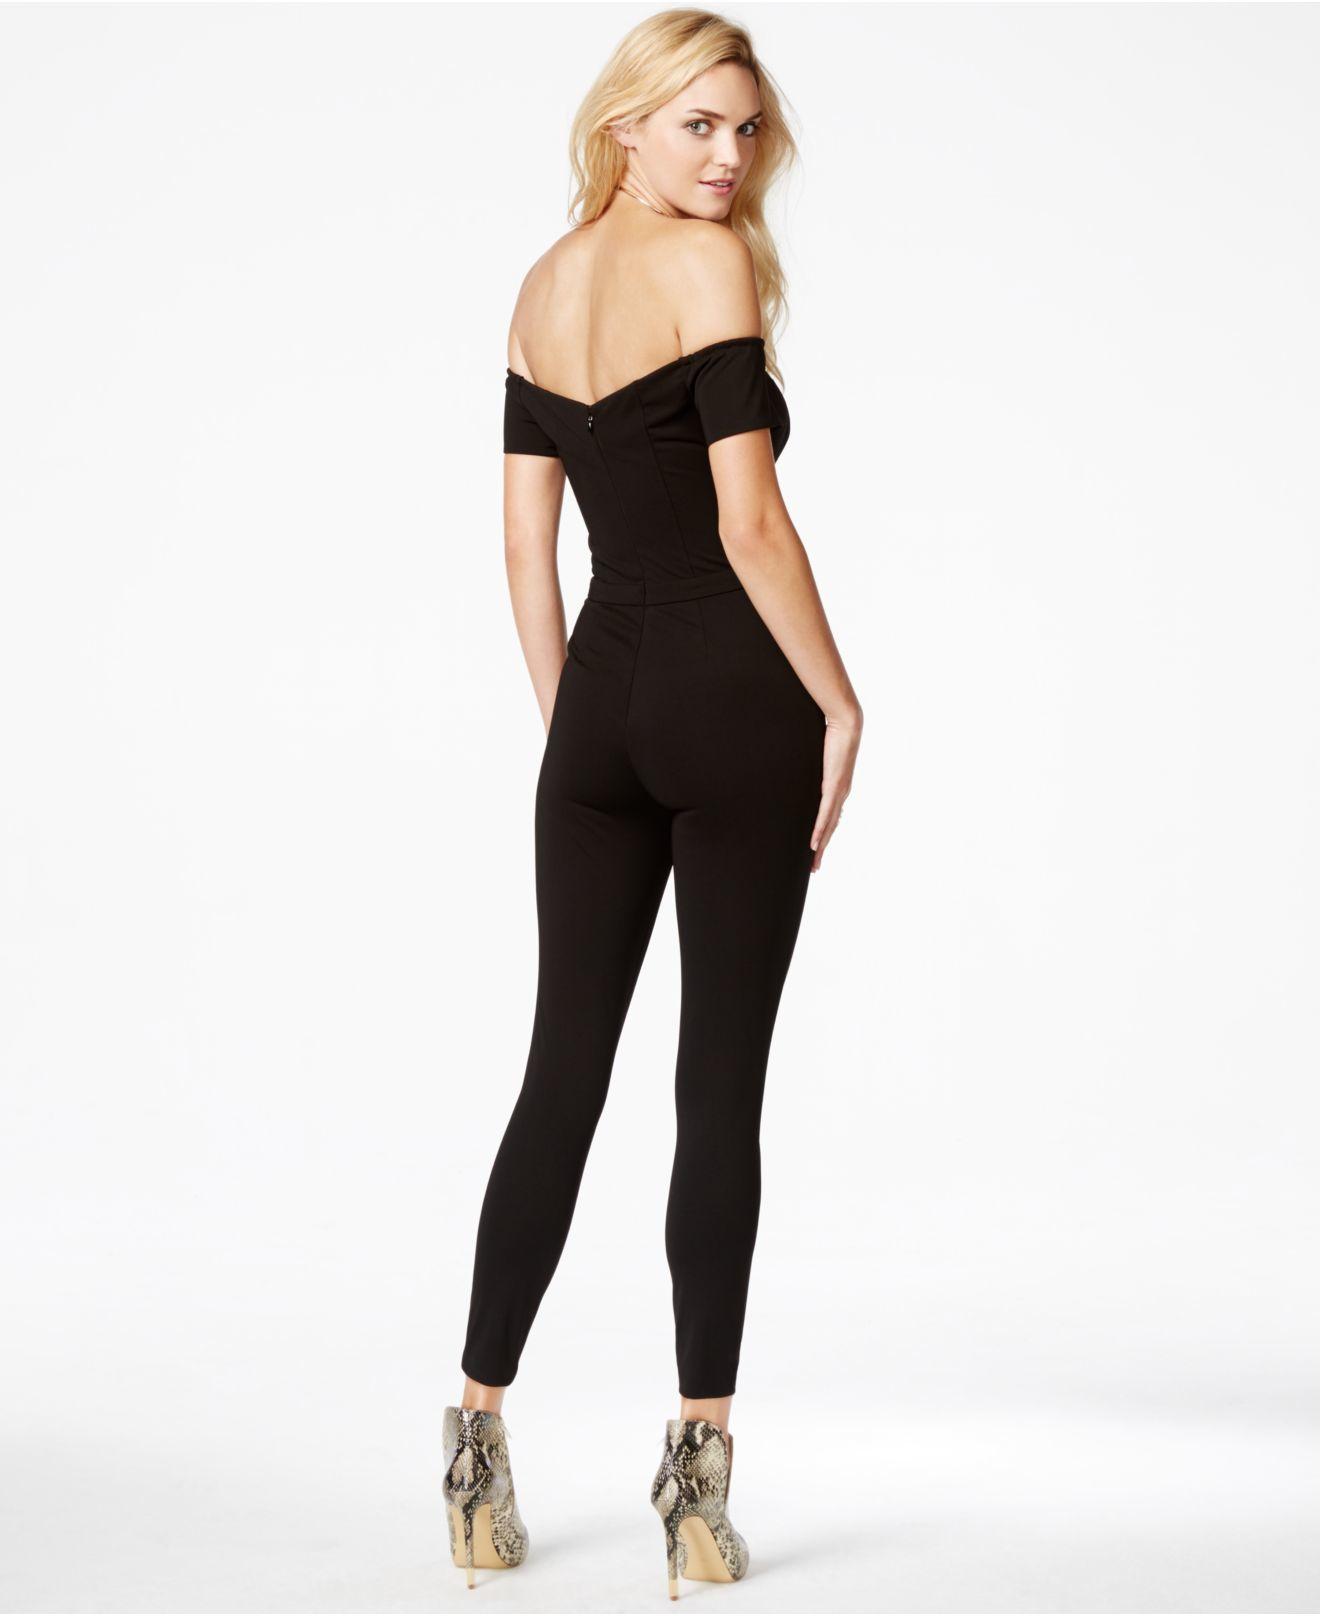 Guess Off-the-shoulder Jumpsuit in Black | Lyst